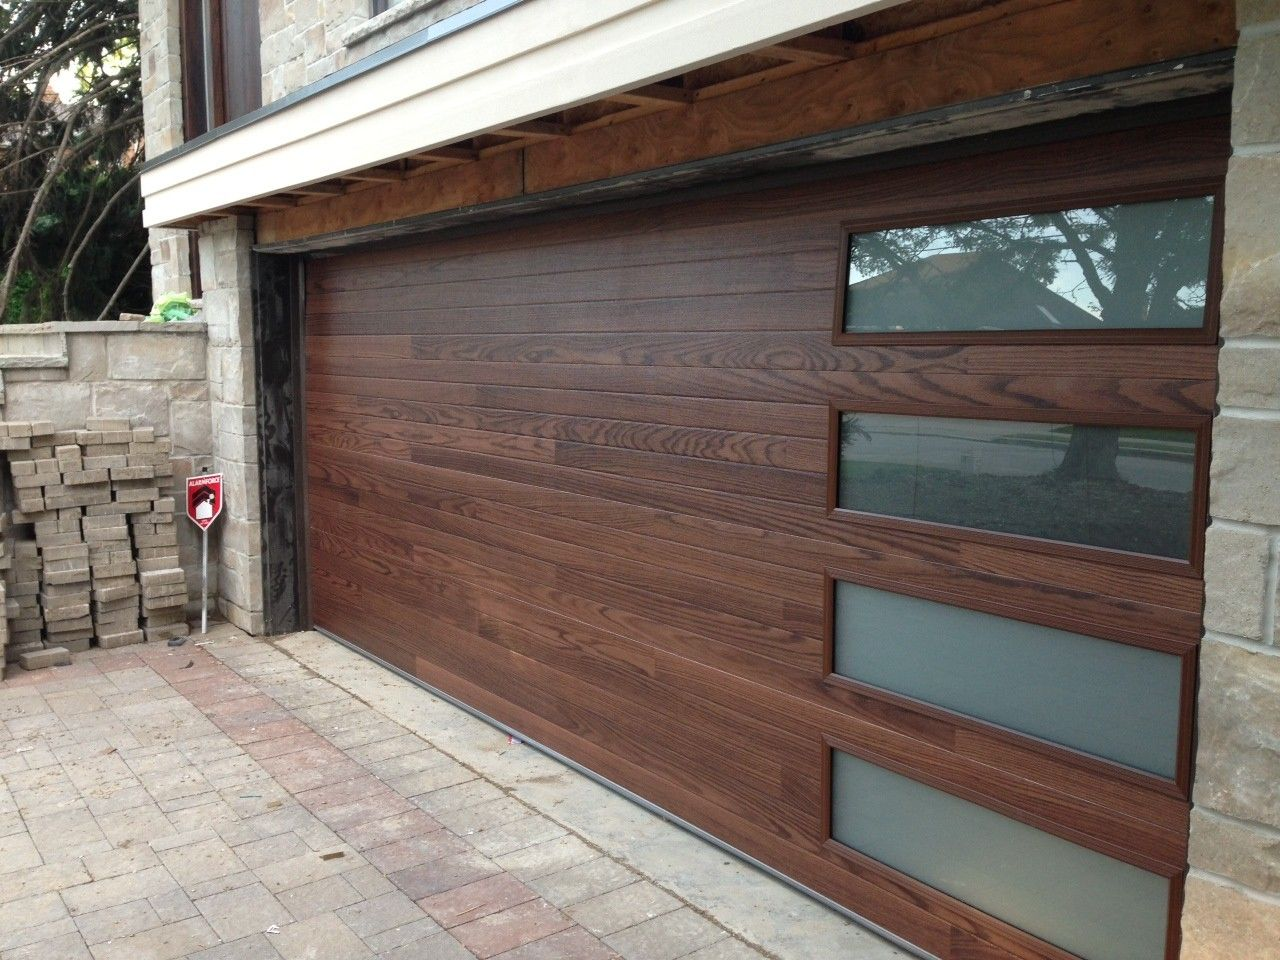 Clopay Garage Door Selections 614 877 0350 Grove City Garage Door Inc Carriage House Garage Carriage House Garage Doors Garage Doors